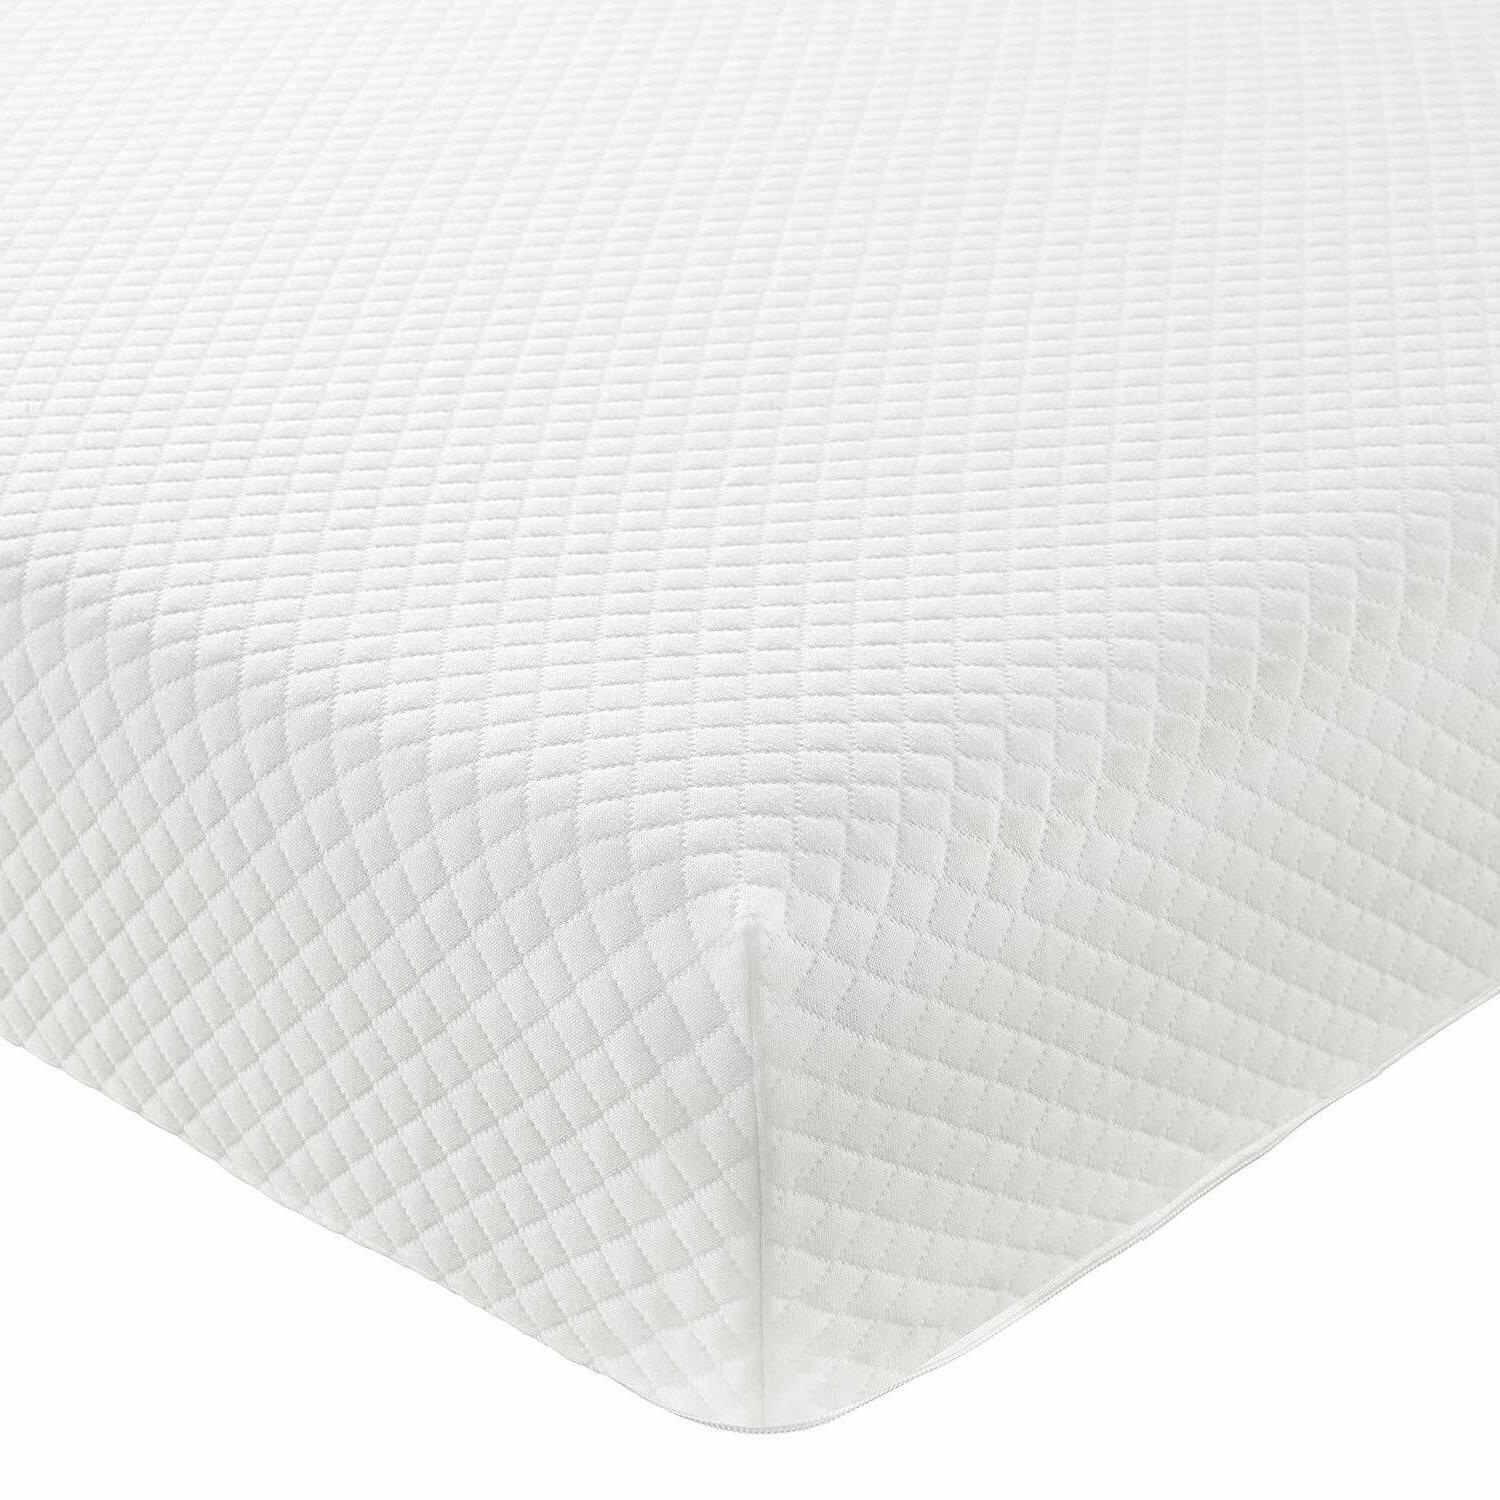 Modway Aveline Infused Mattress, CertiPUR-US